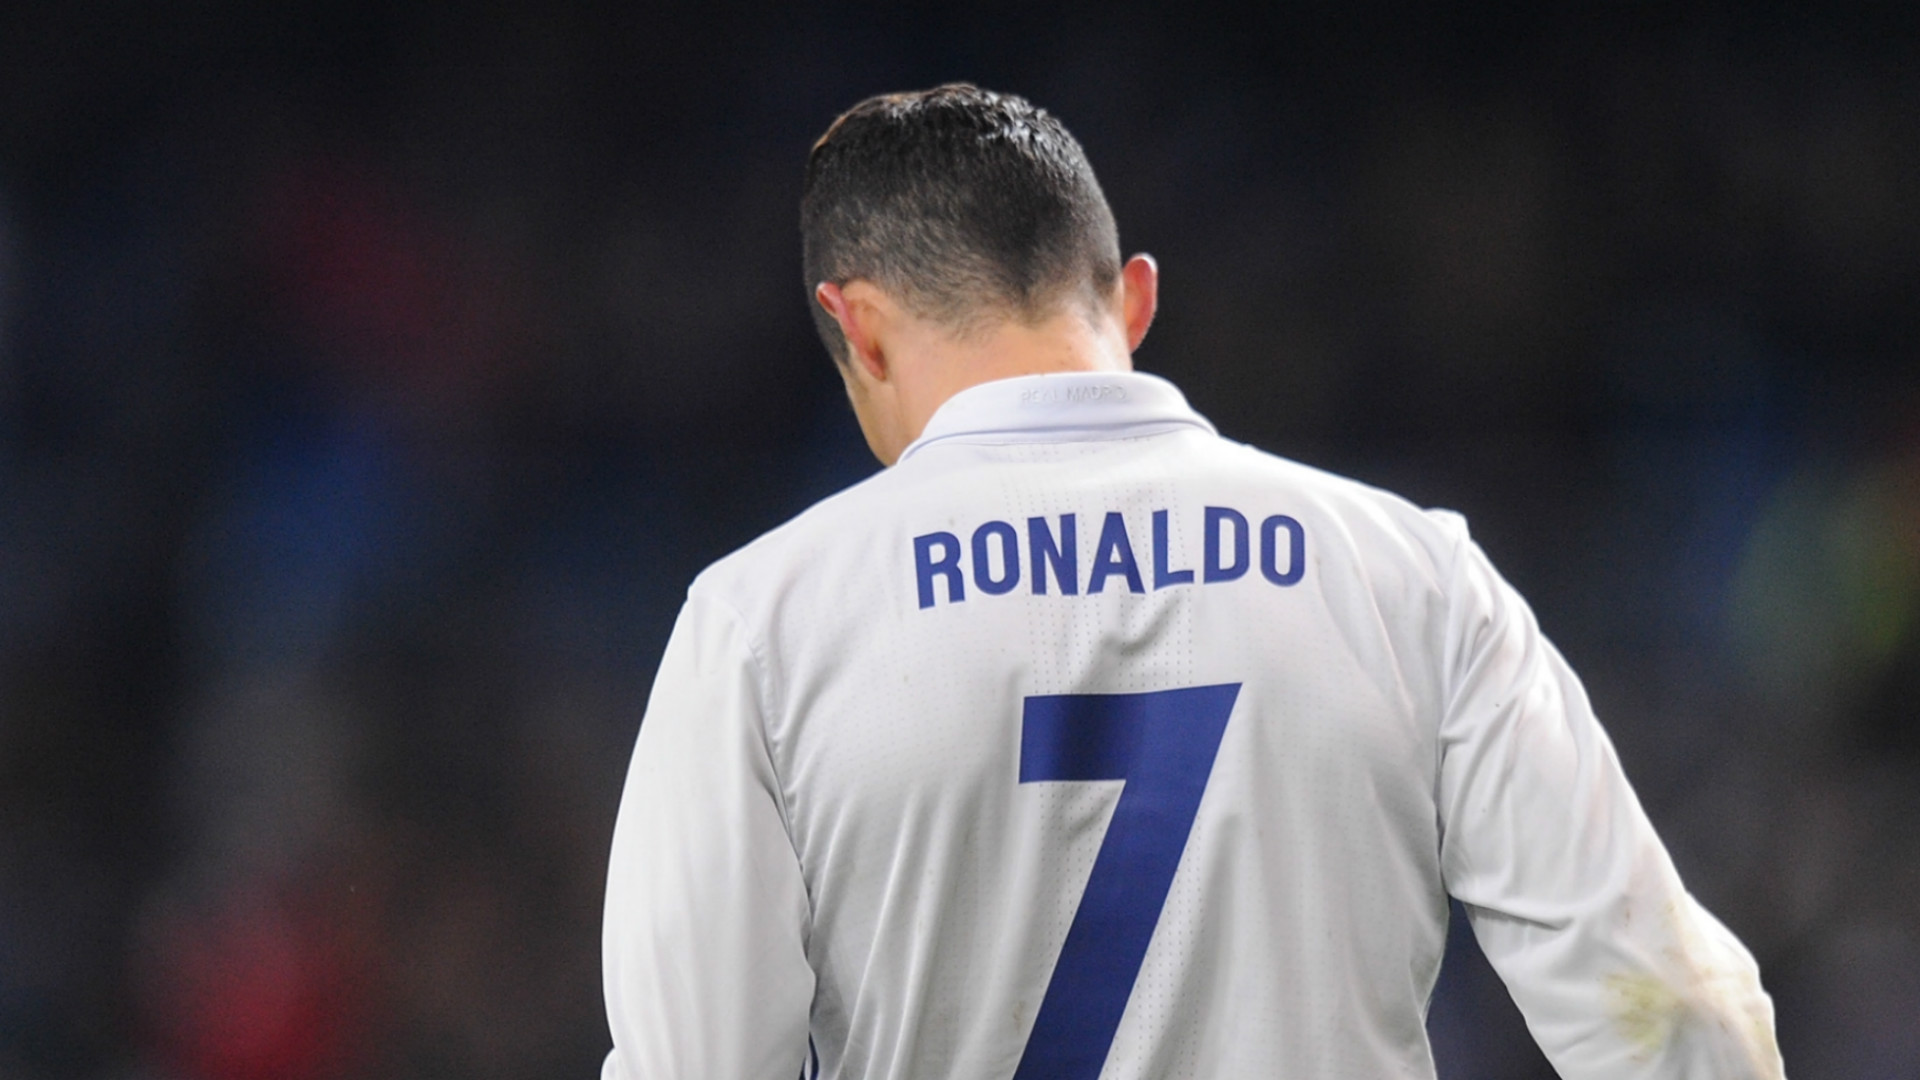 RONALDO GIVES REAL ULTIMATUM